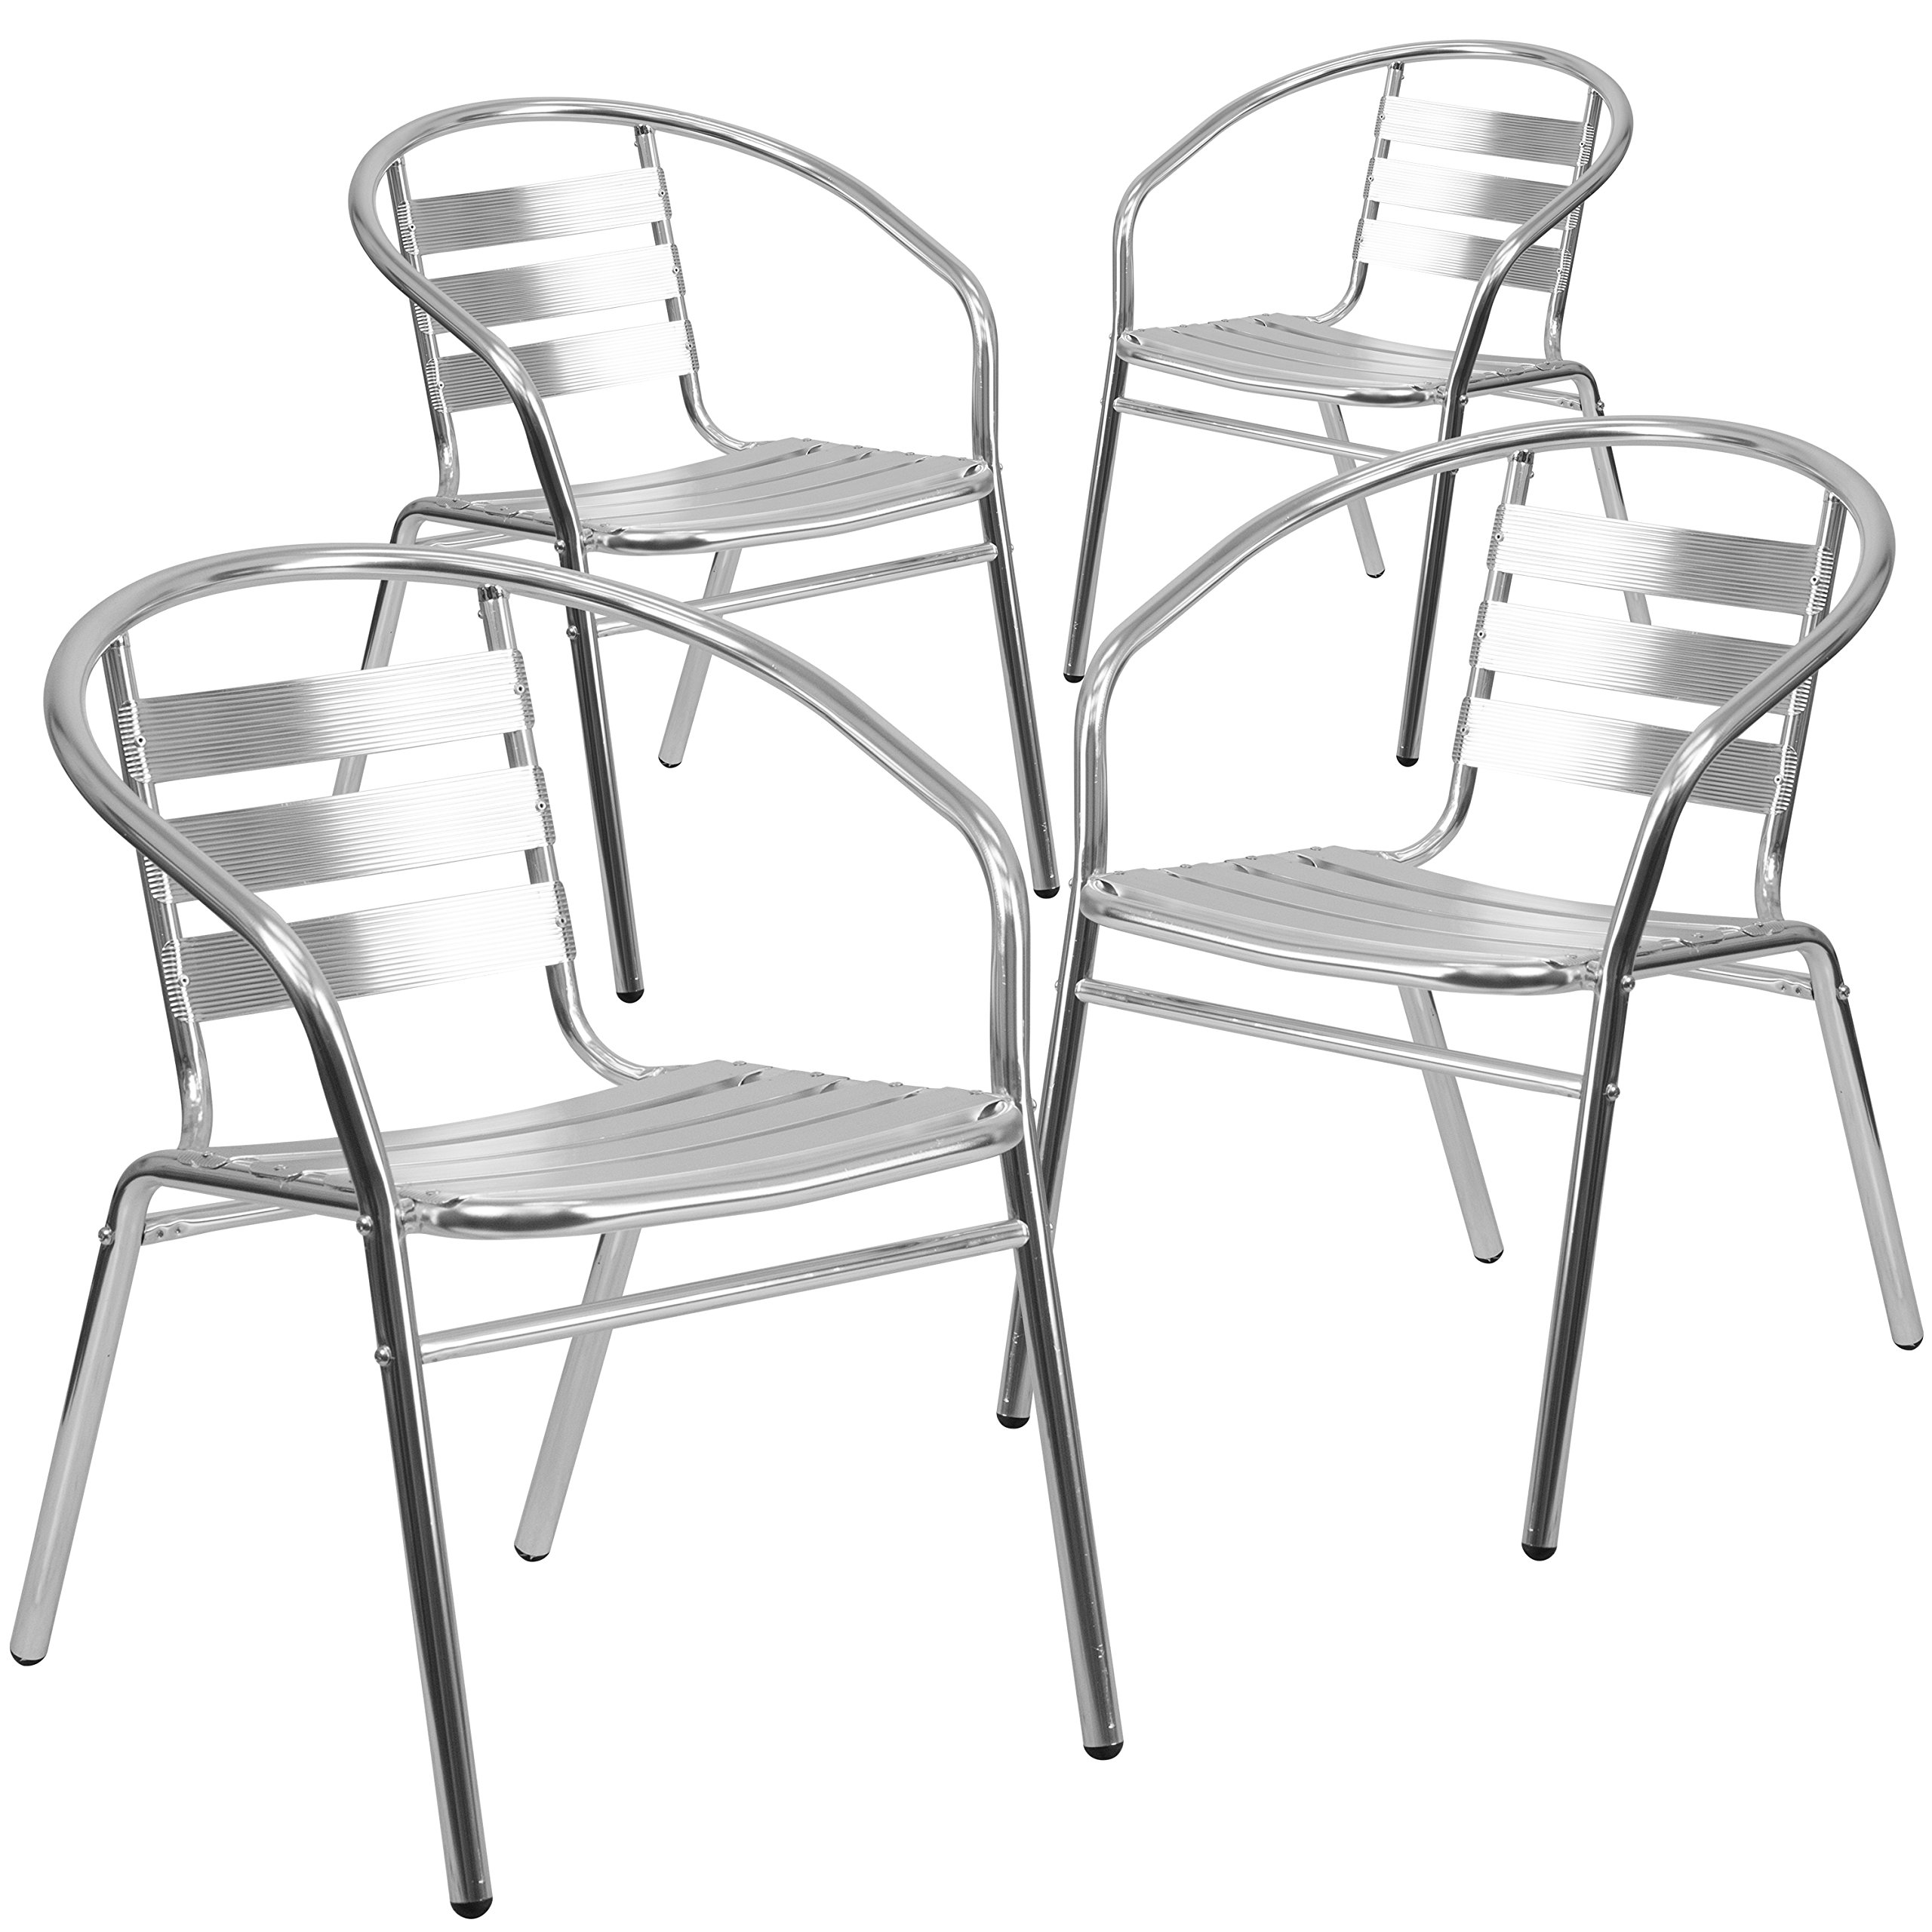 Flash Furniture 4 Pk. Commercial Aluminum Indoor-Outdoor Restaurant Stack Chair with Triple Slat Back and Arms by Flash Furniture